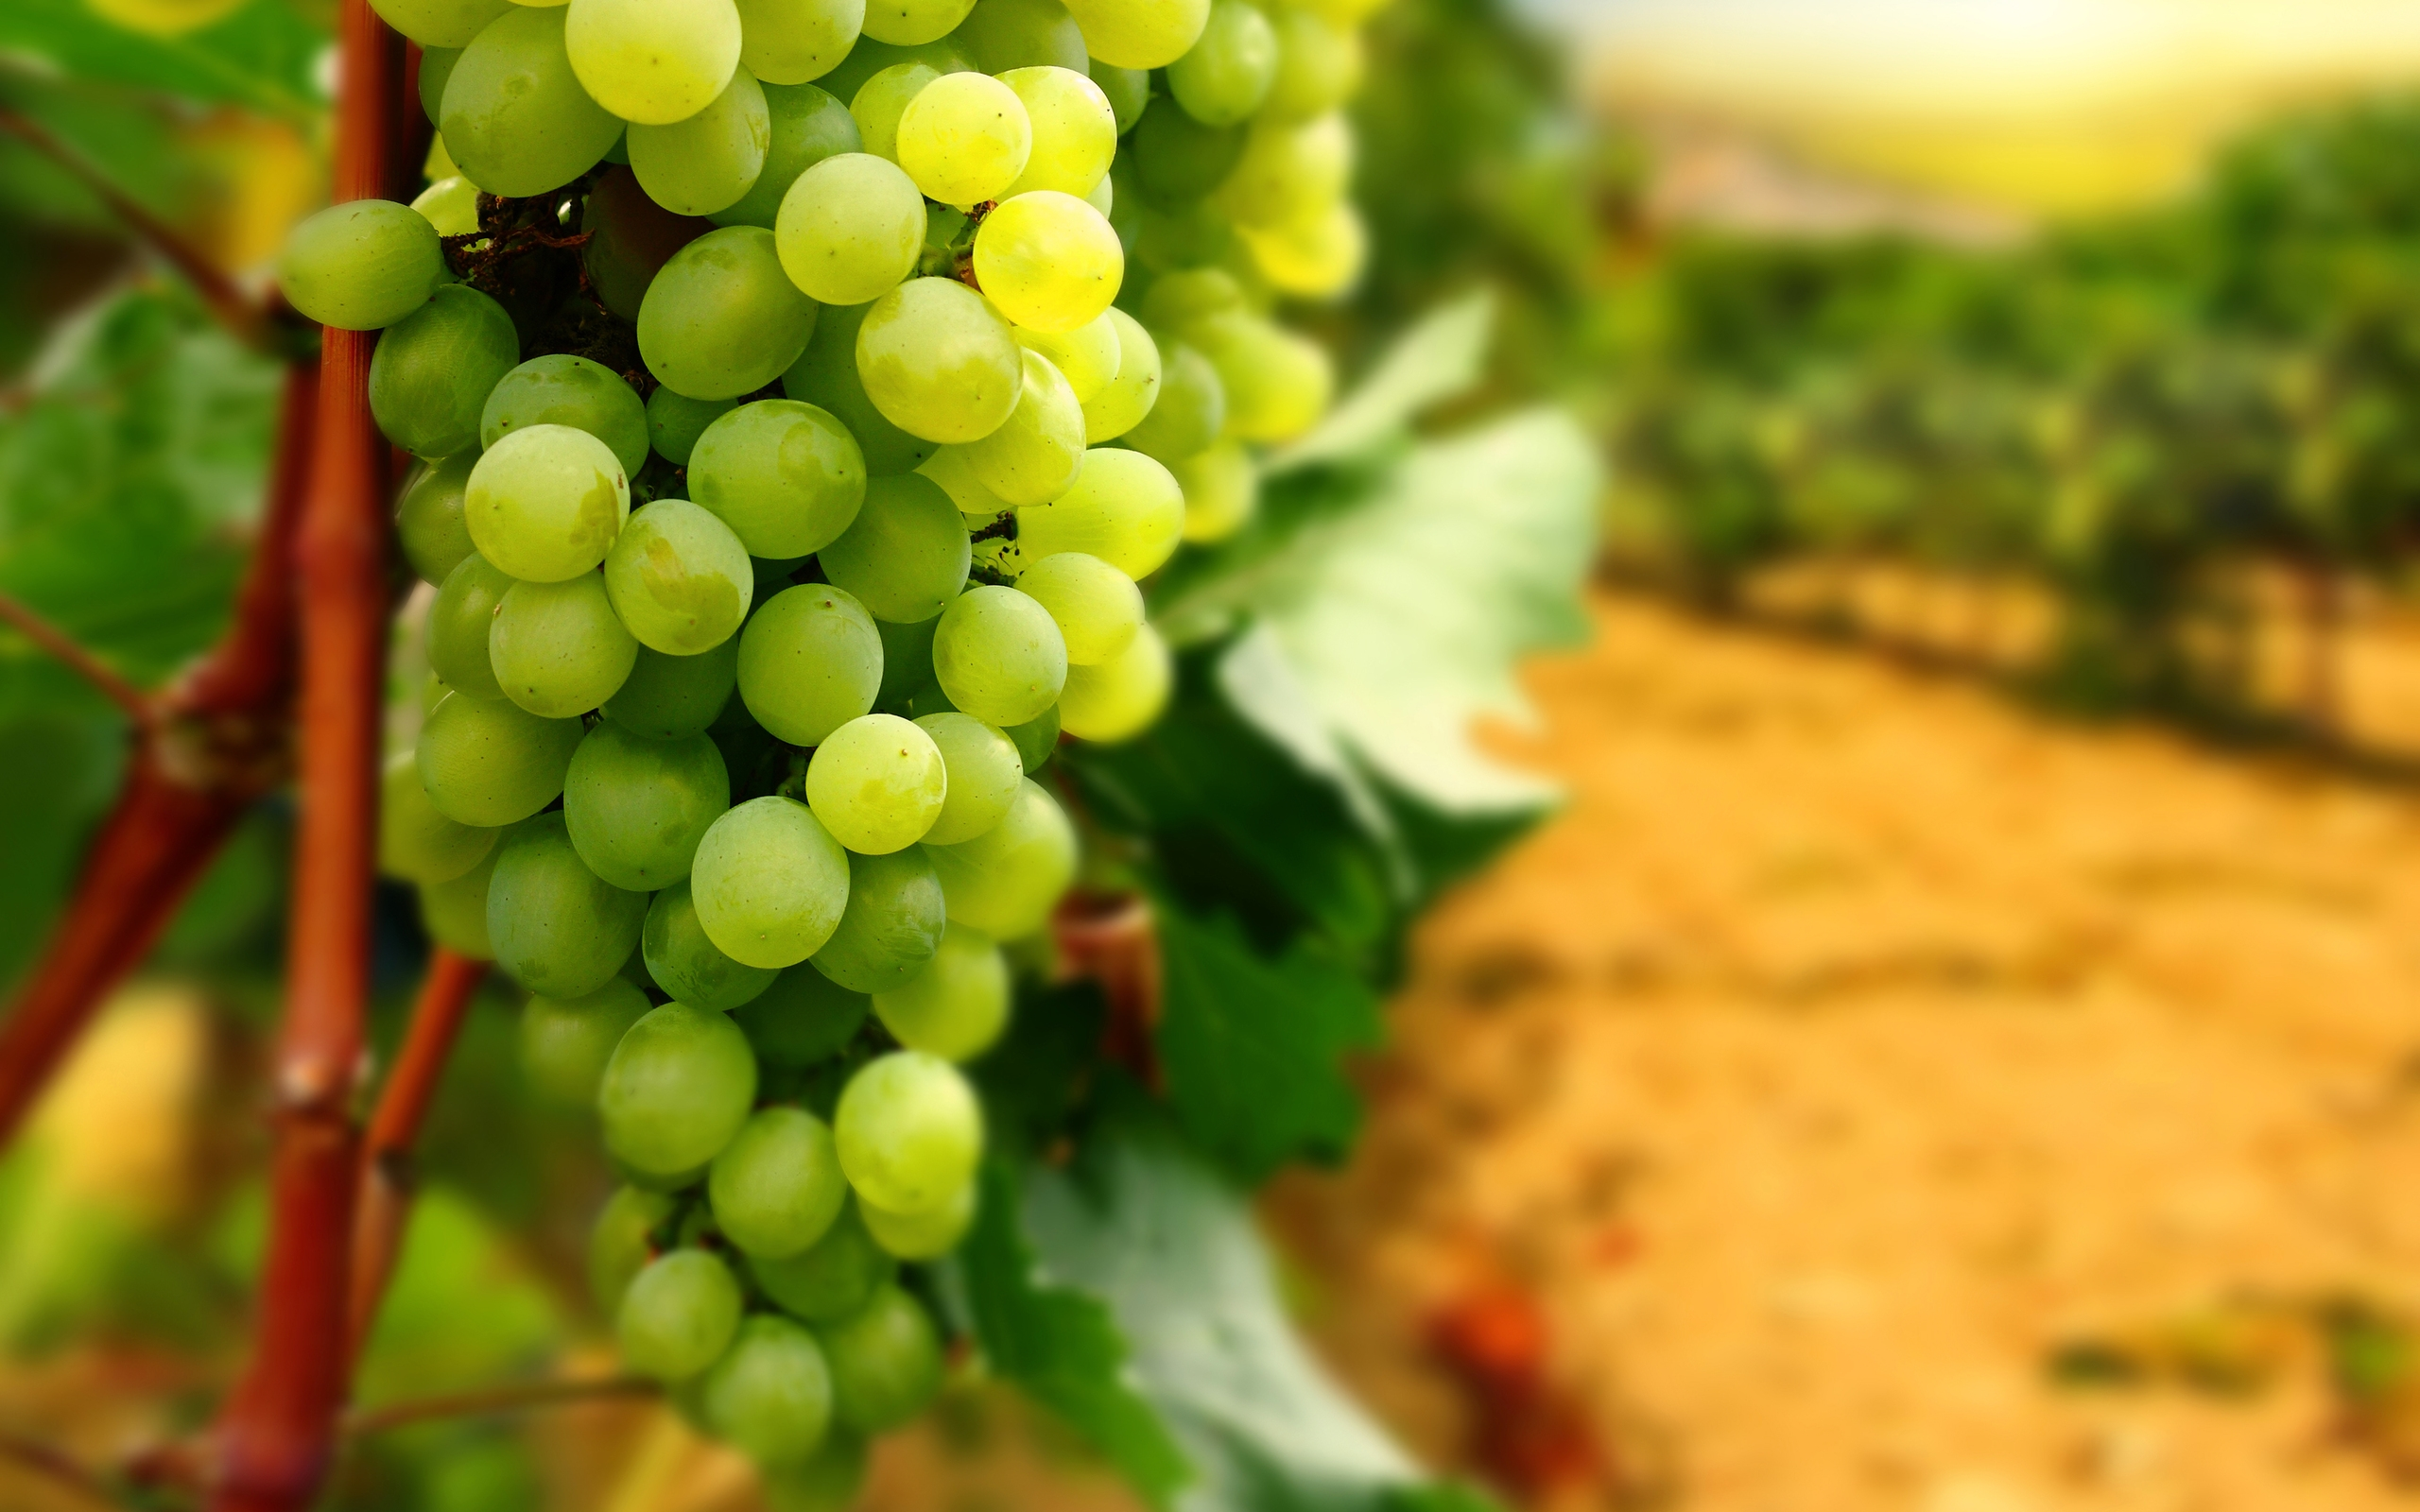 Fruits hd images - Green Grapes Hd Wallpaper